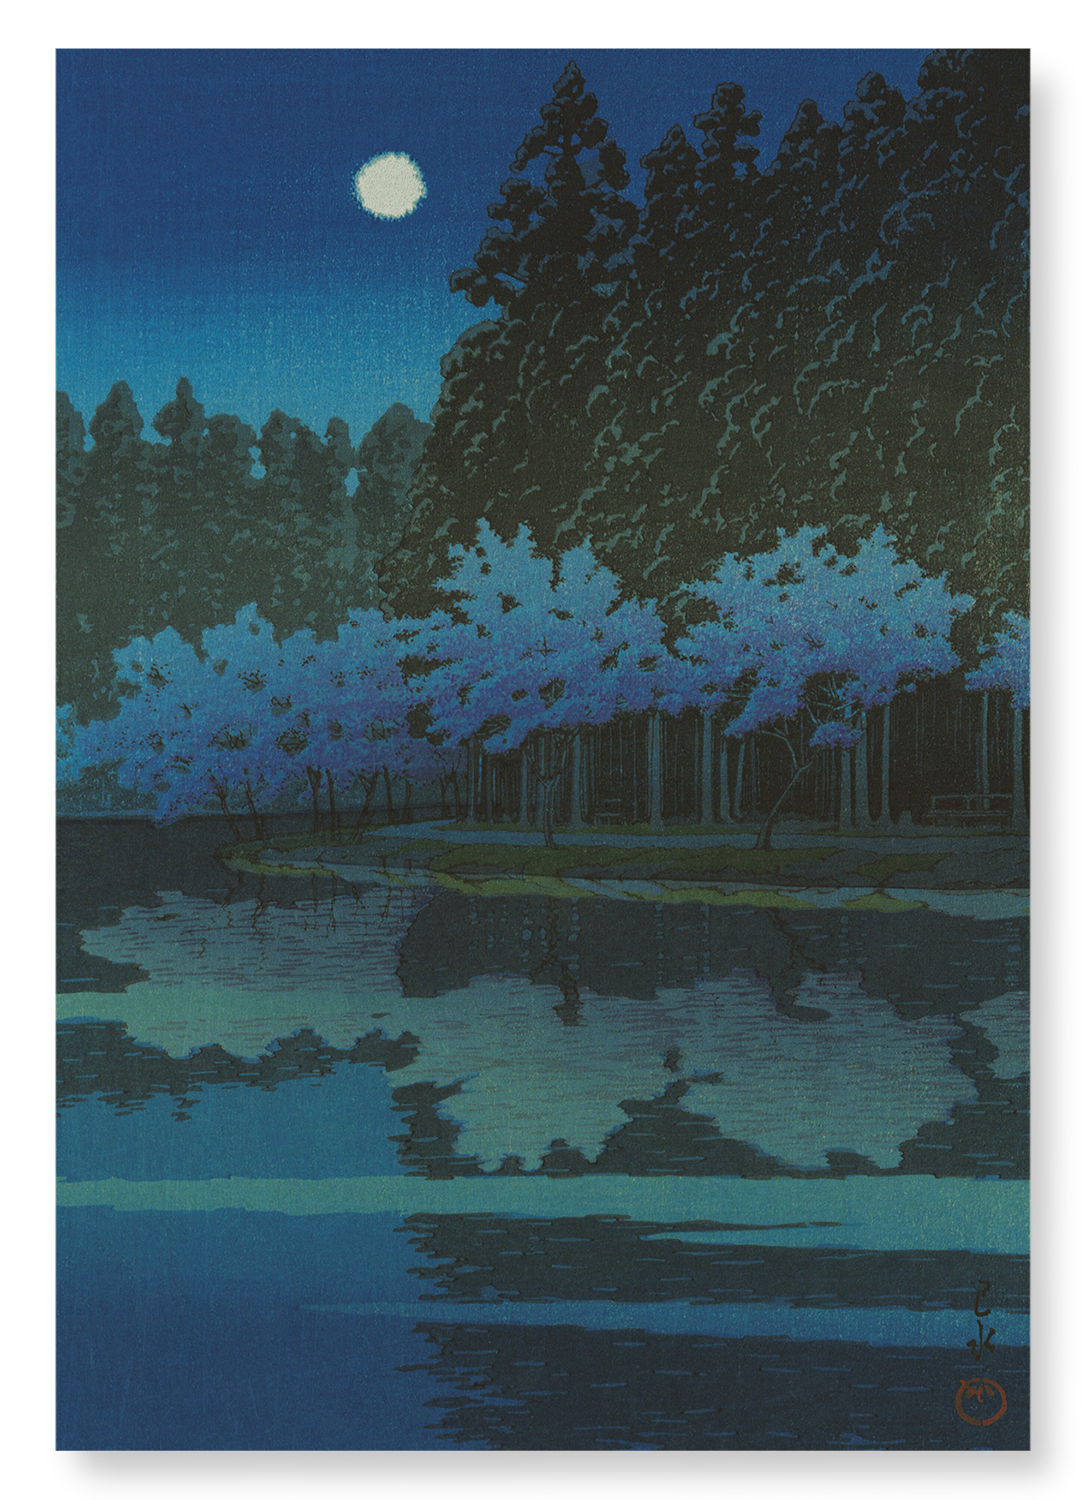 Spring cherry blossoms at night: 2xPrints